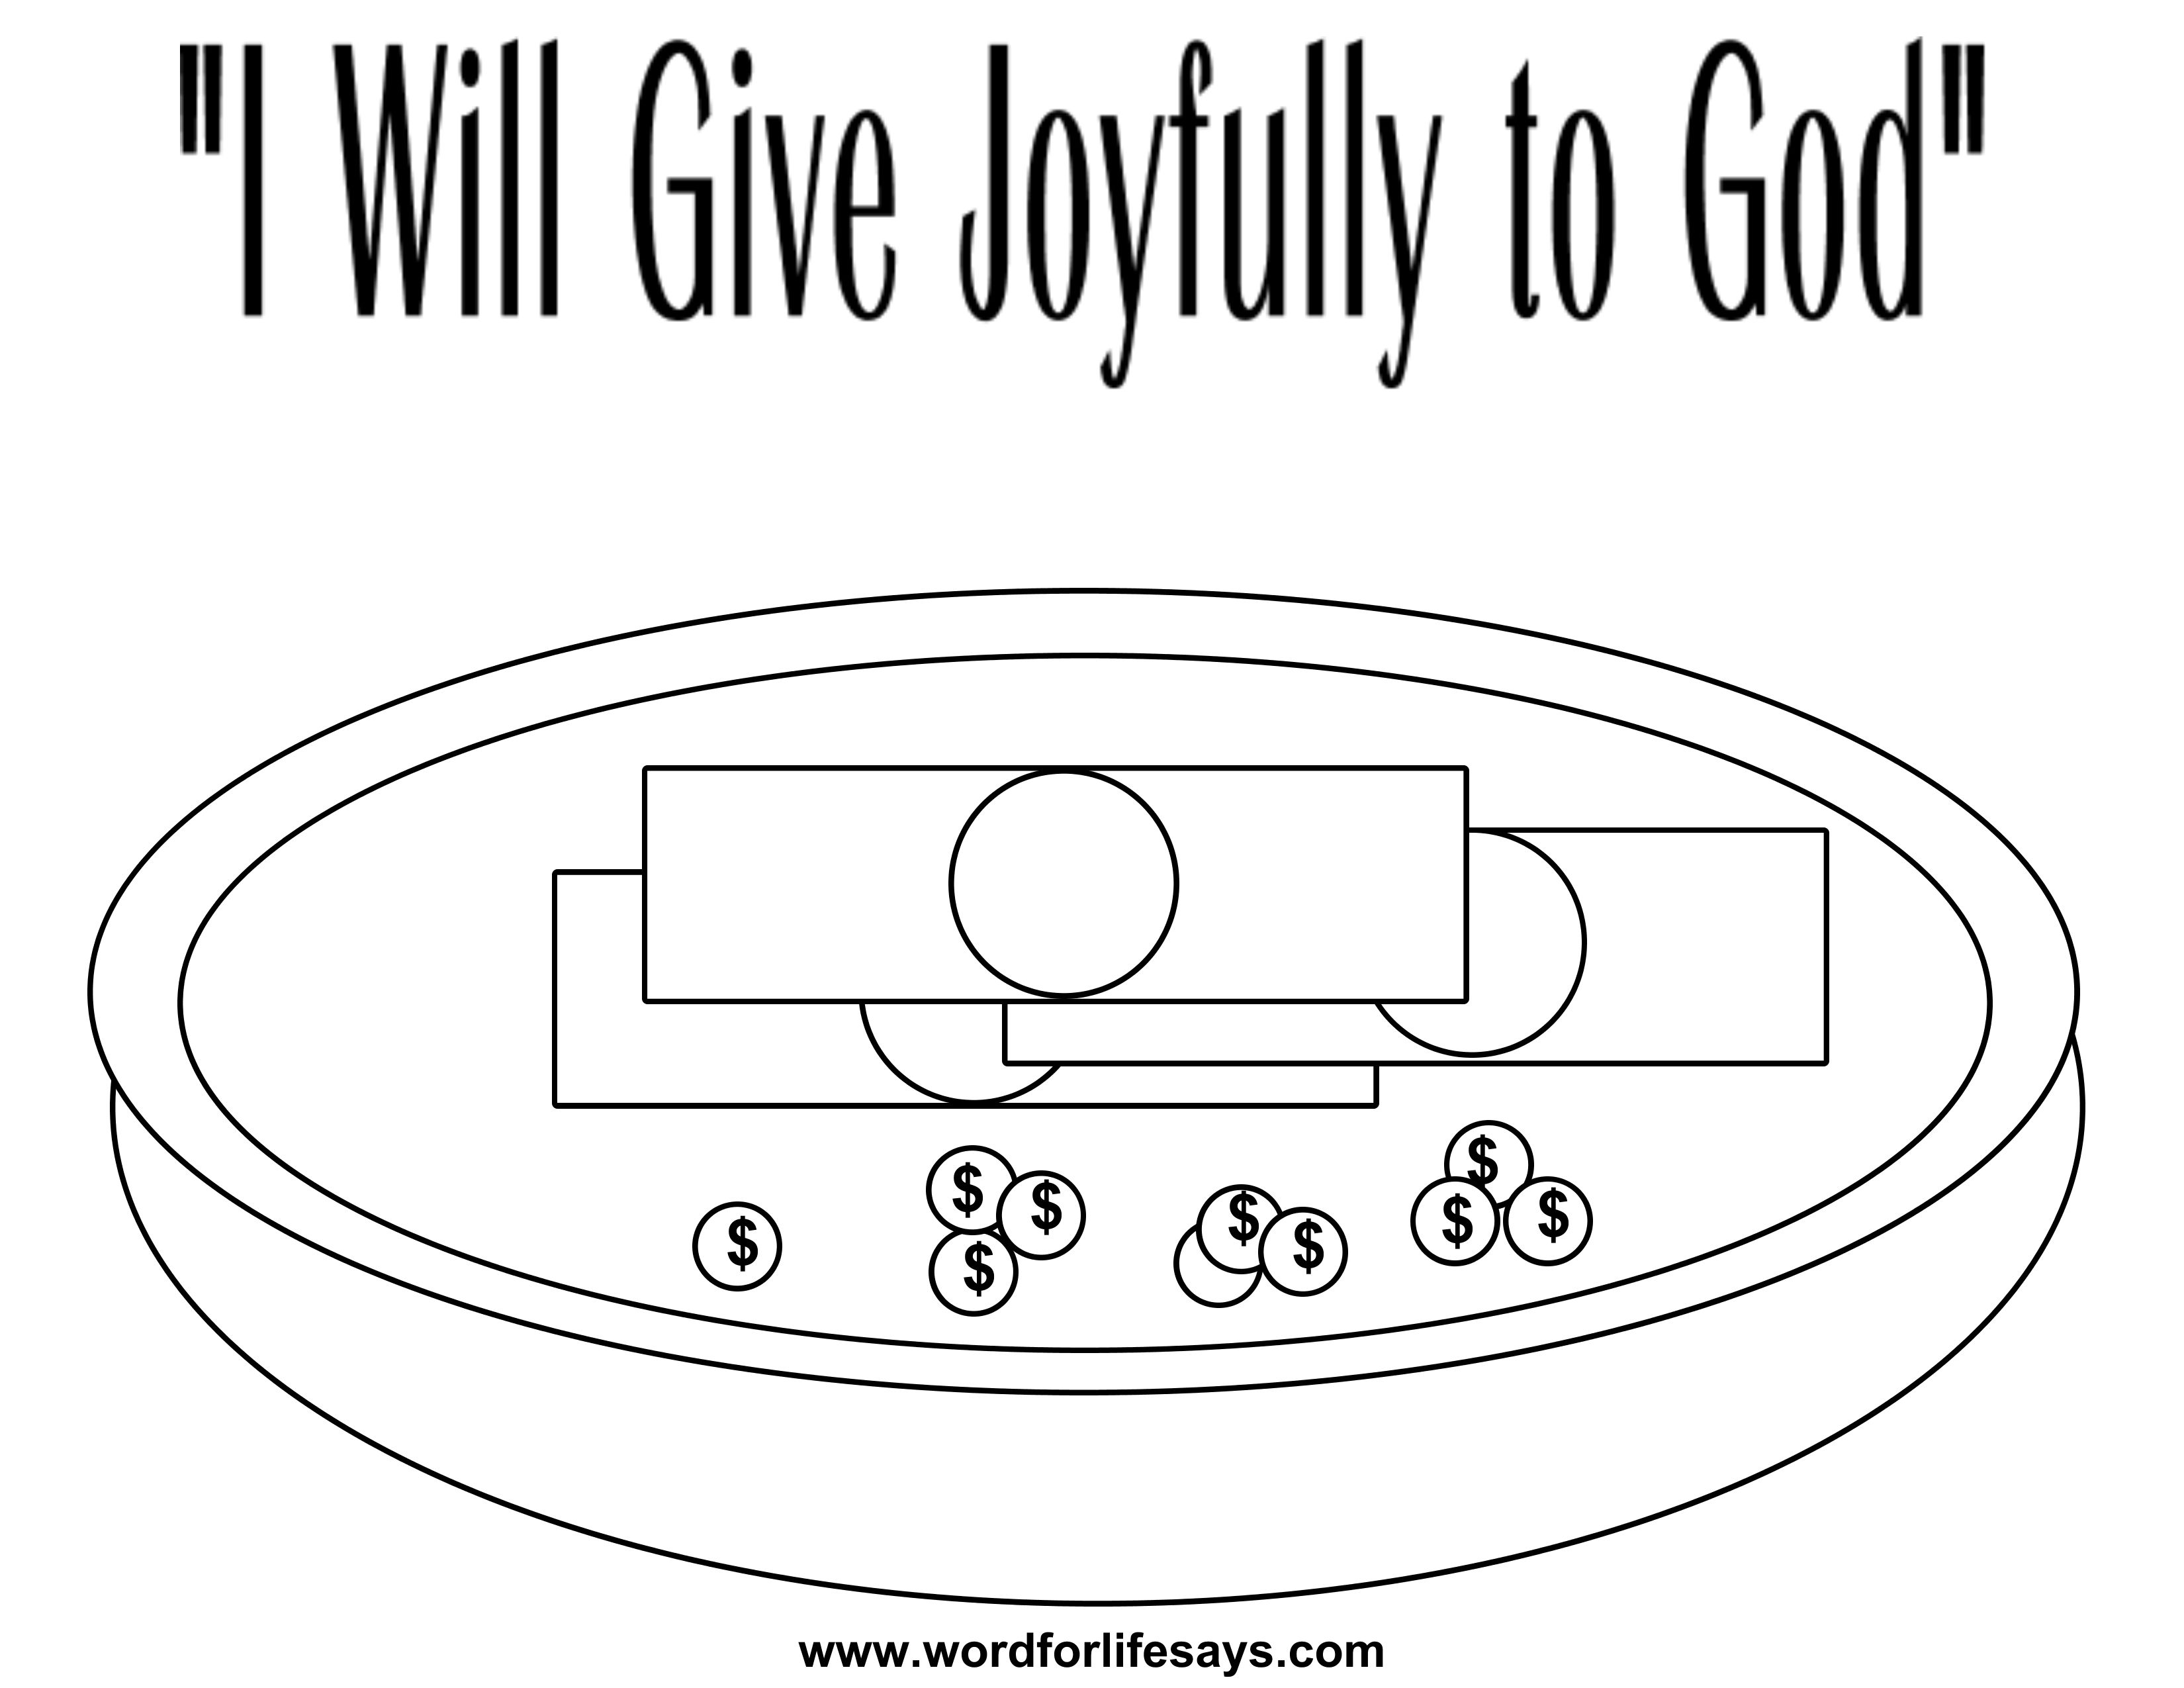 Uncategorized God Loves A Cheerful Giver Coloring Page god loves a cheerful giver coloring page home page